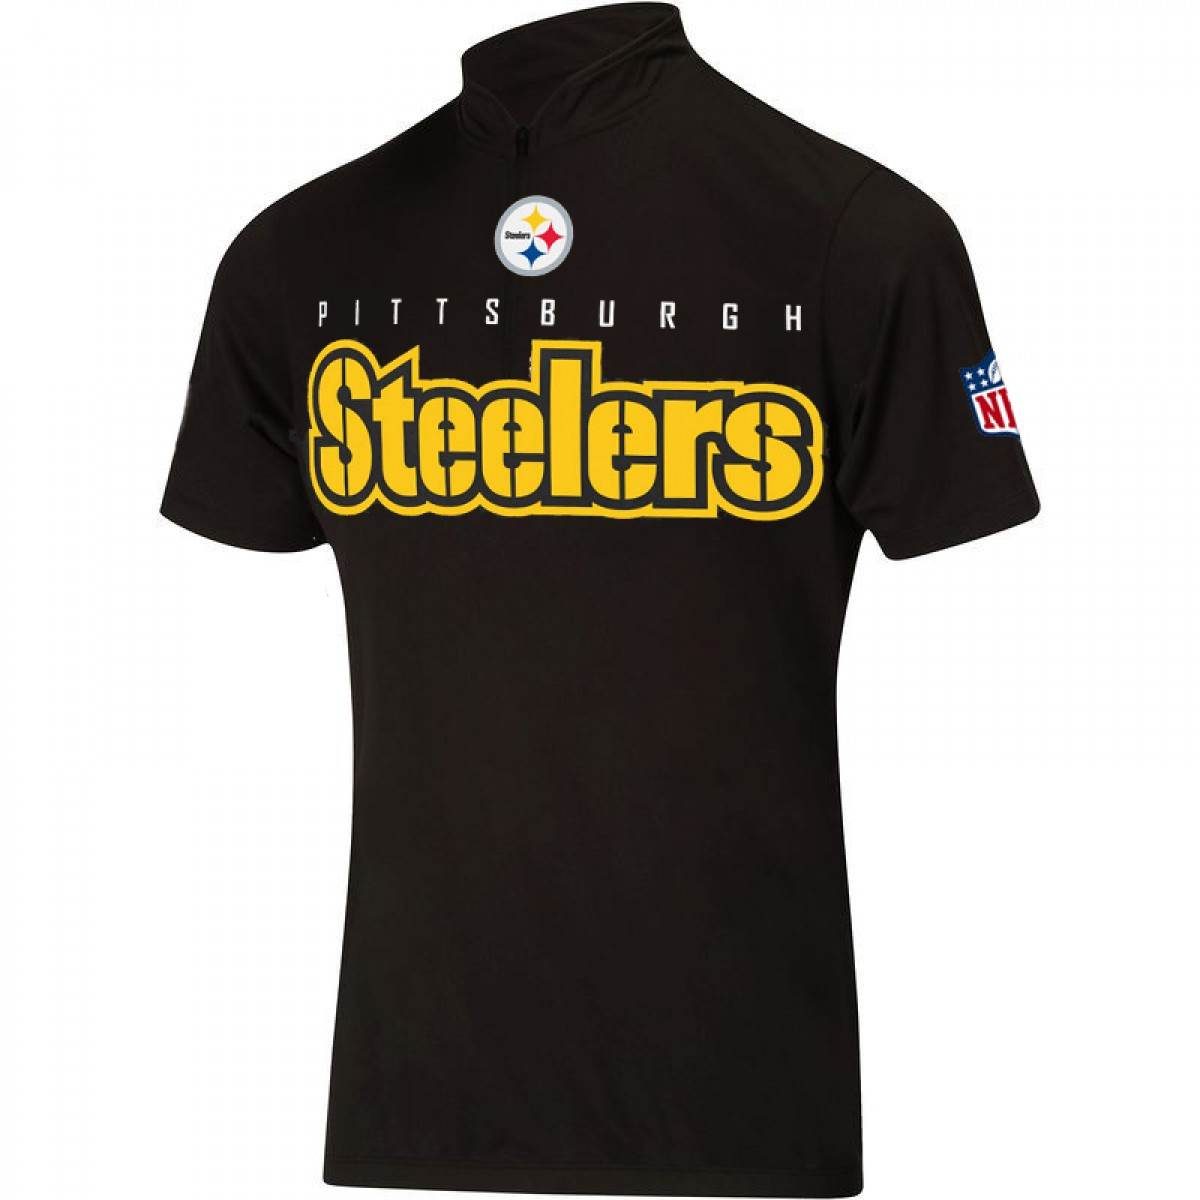 NFL  Pittsburgh Steelers Cycling  Short Sleeve Jersey